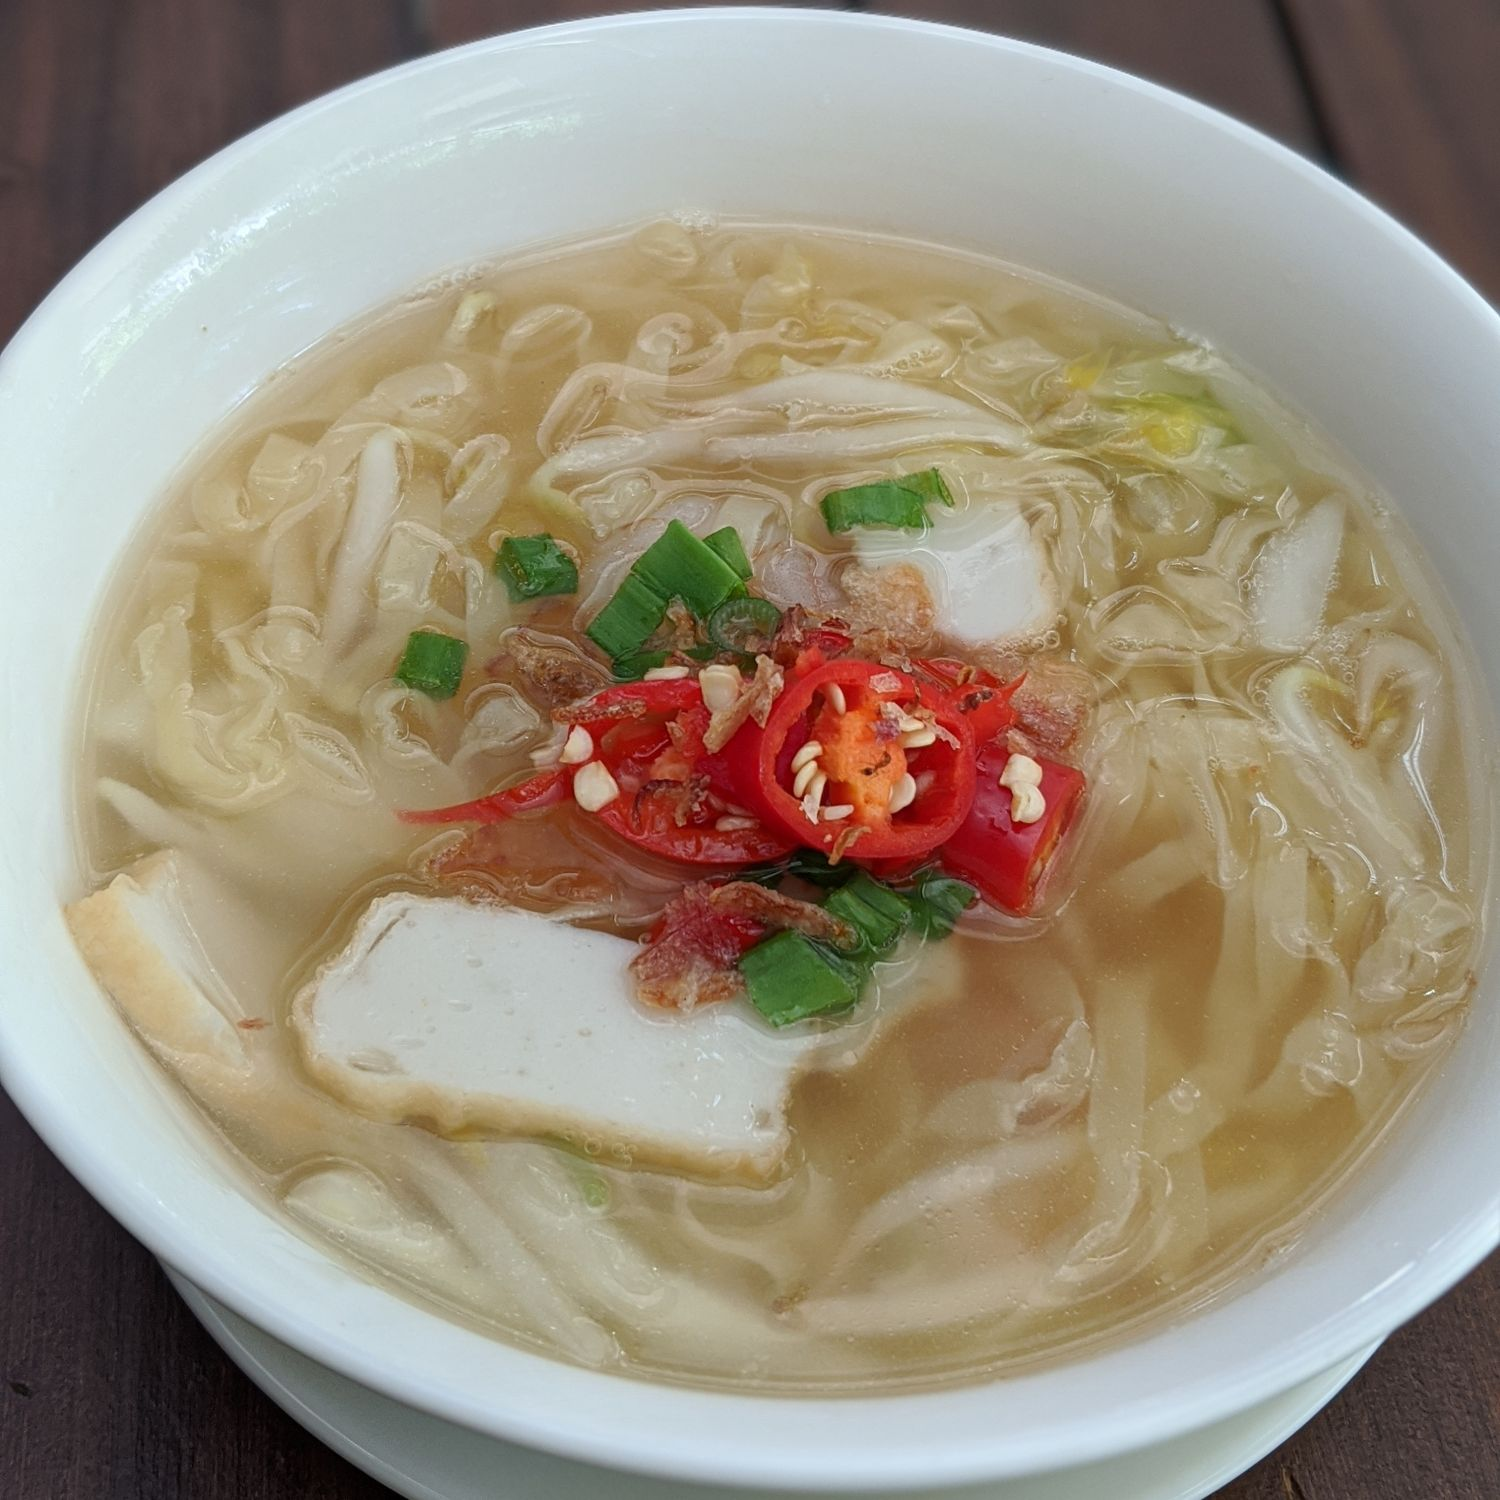 Sofitel Singapore Sentosa Resort & Spa Kwee Zeen Breakfast Chicken Noodle Soup